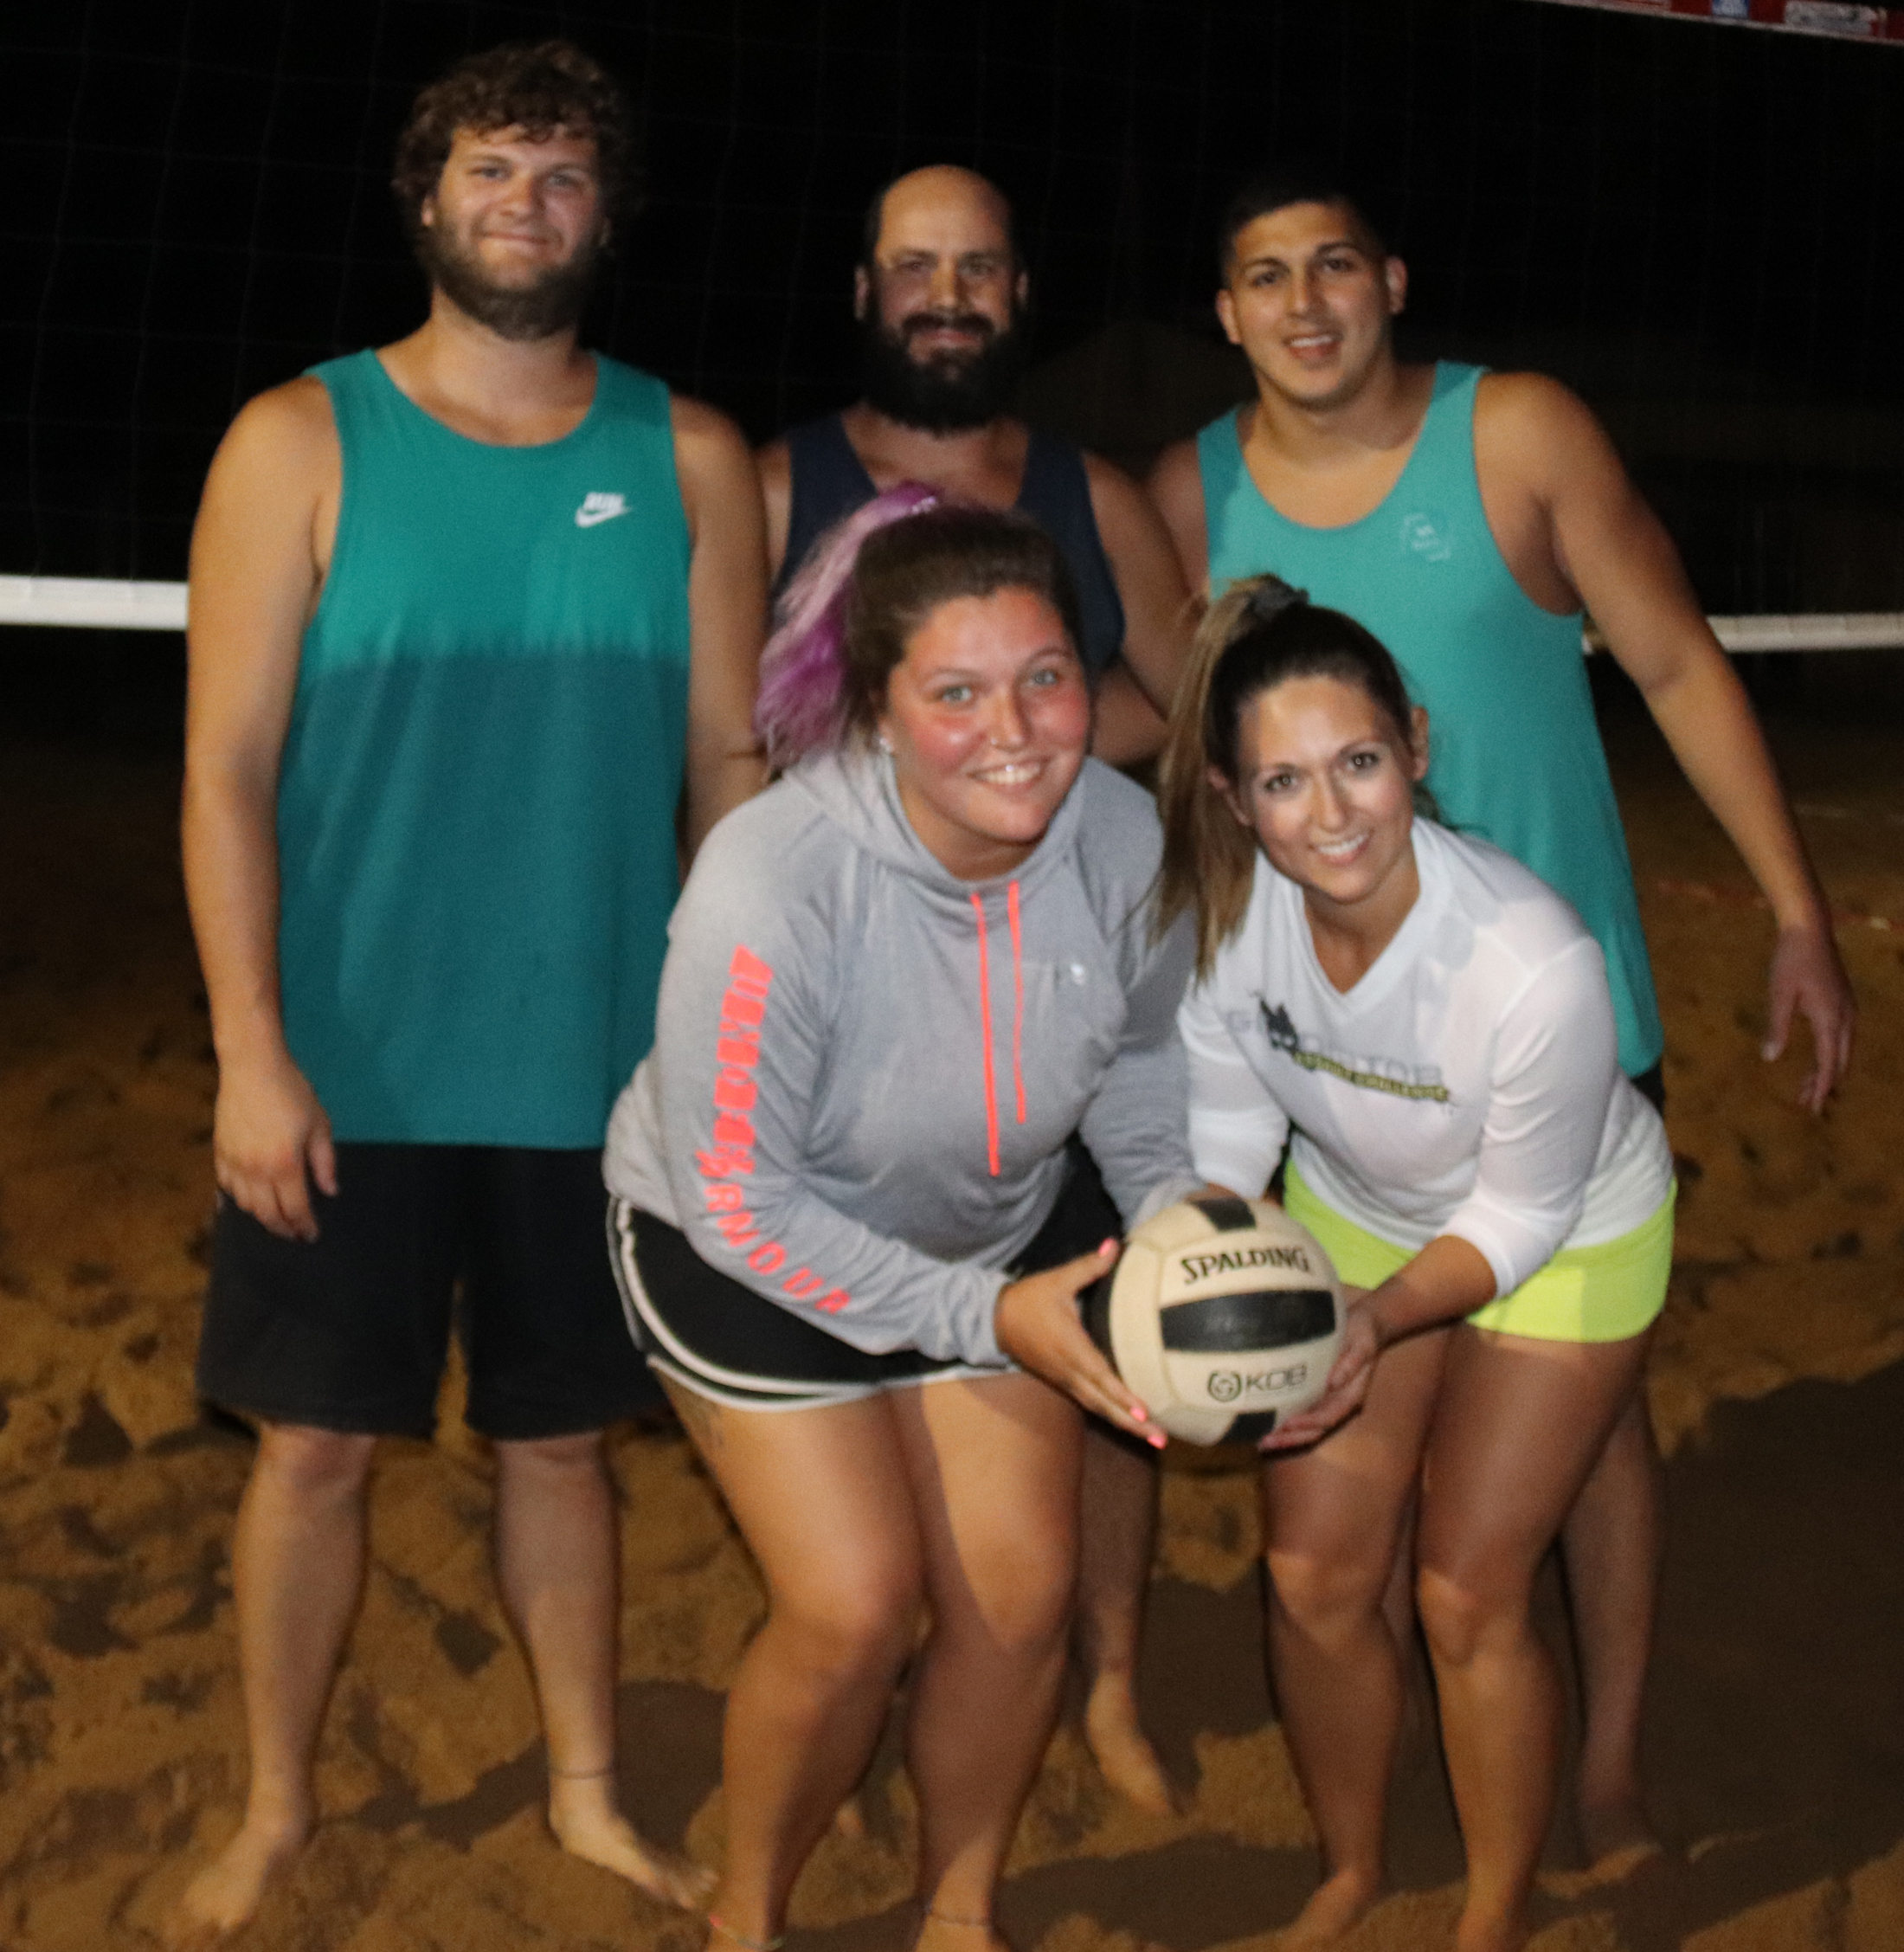 F&AJ's win Comet Bowl Sand Volleyball League championship